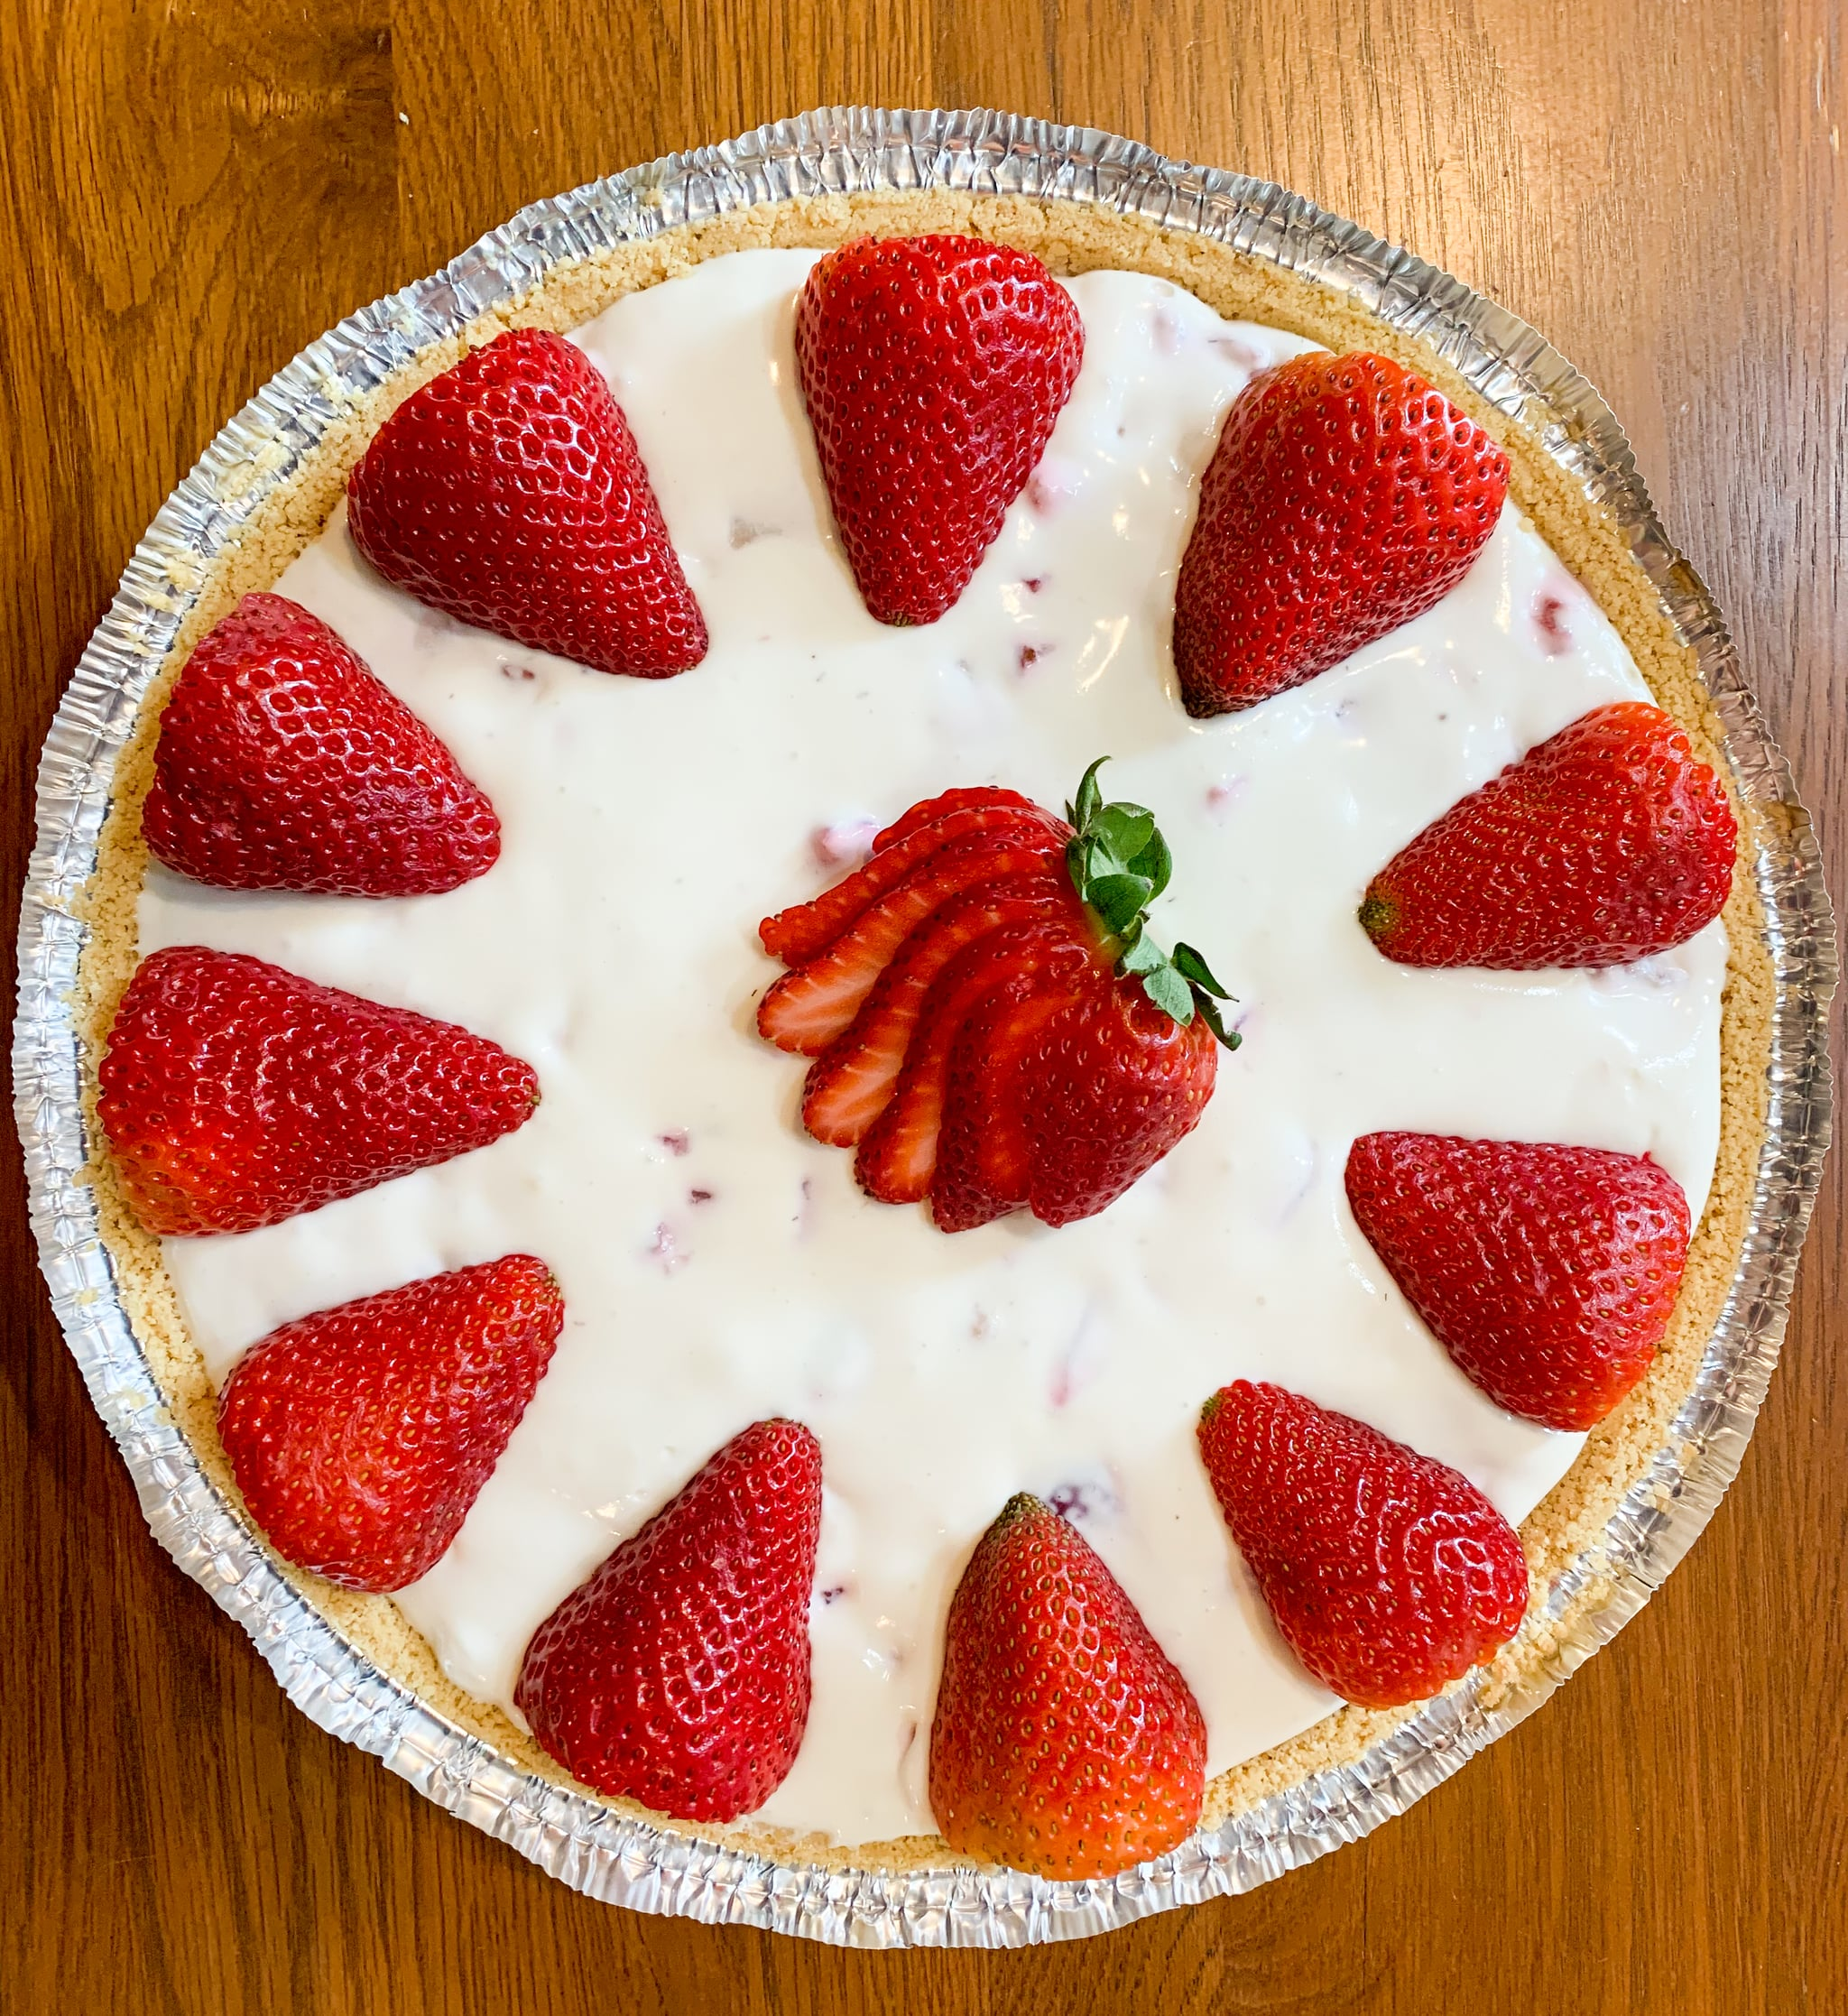 Joanna Gaines S Strawberry Pie Recipe With Photos Popsugar Food